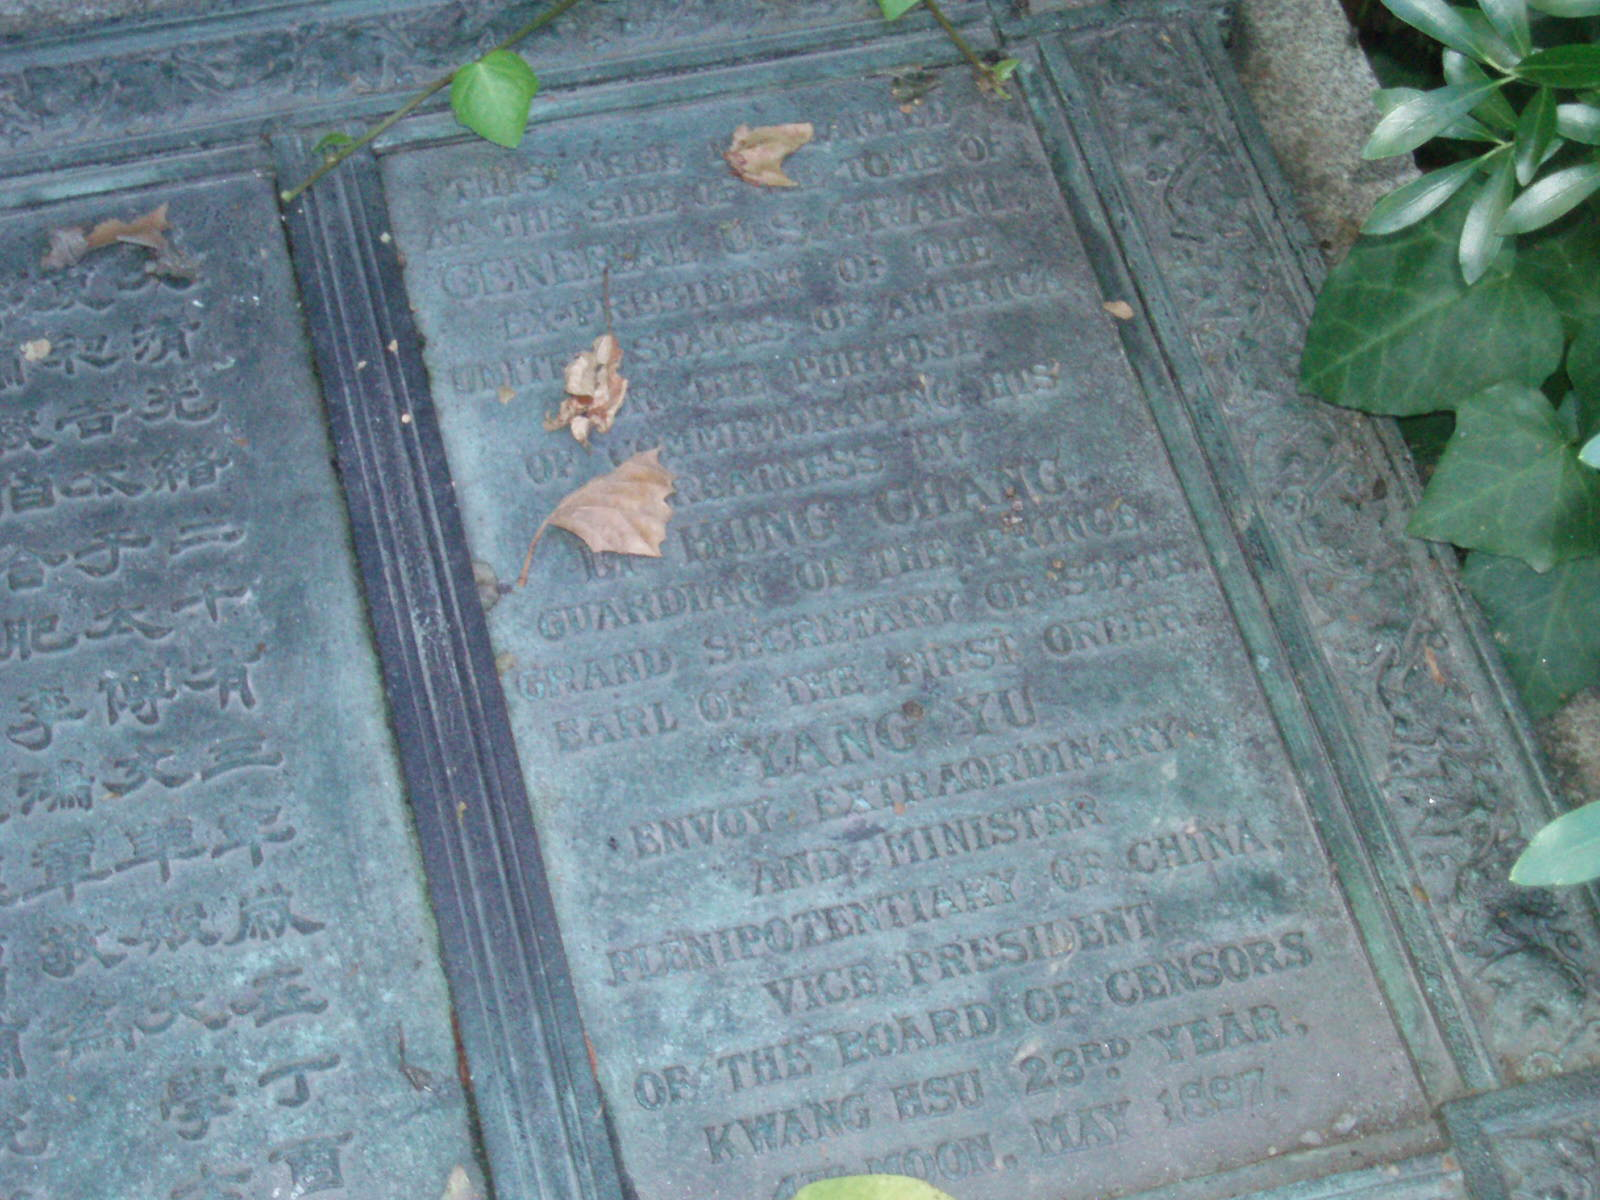 The Chinese Memorial plaque